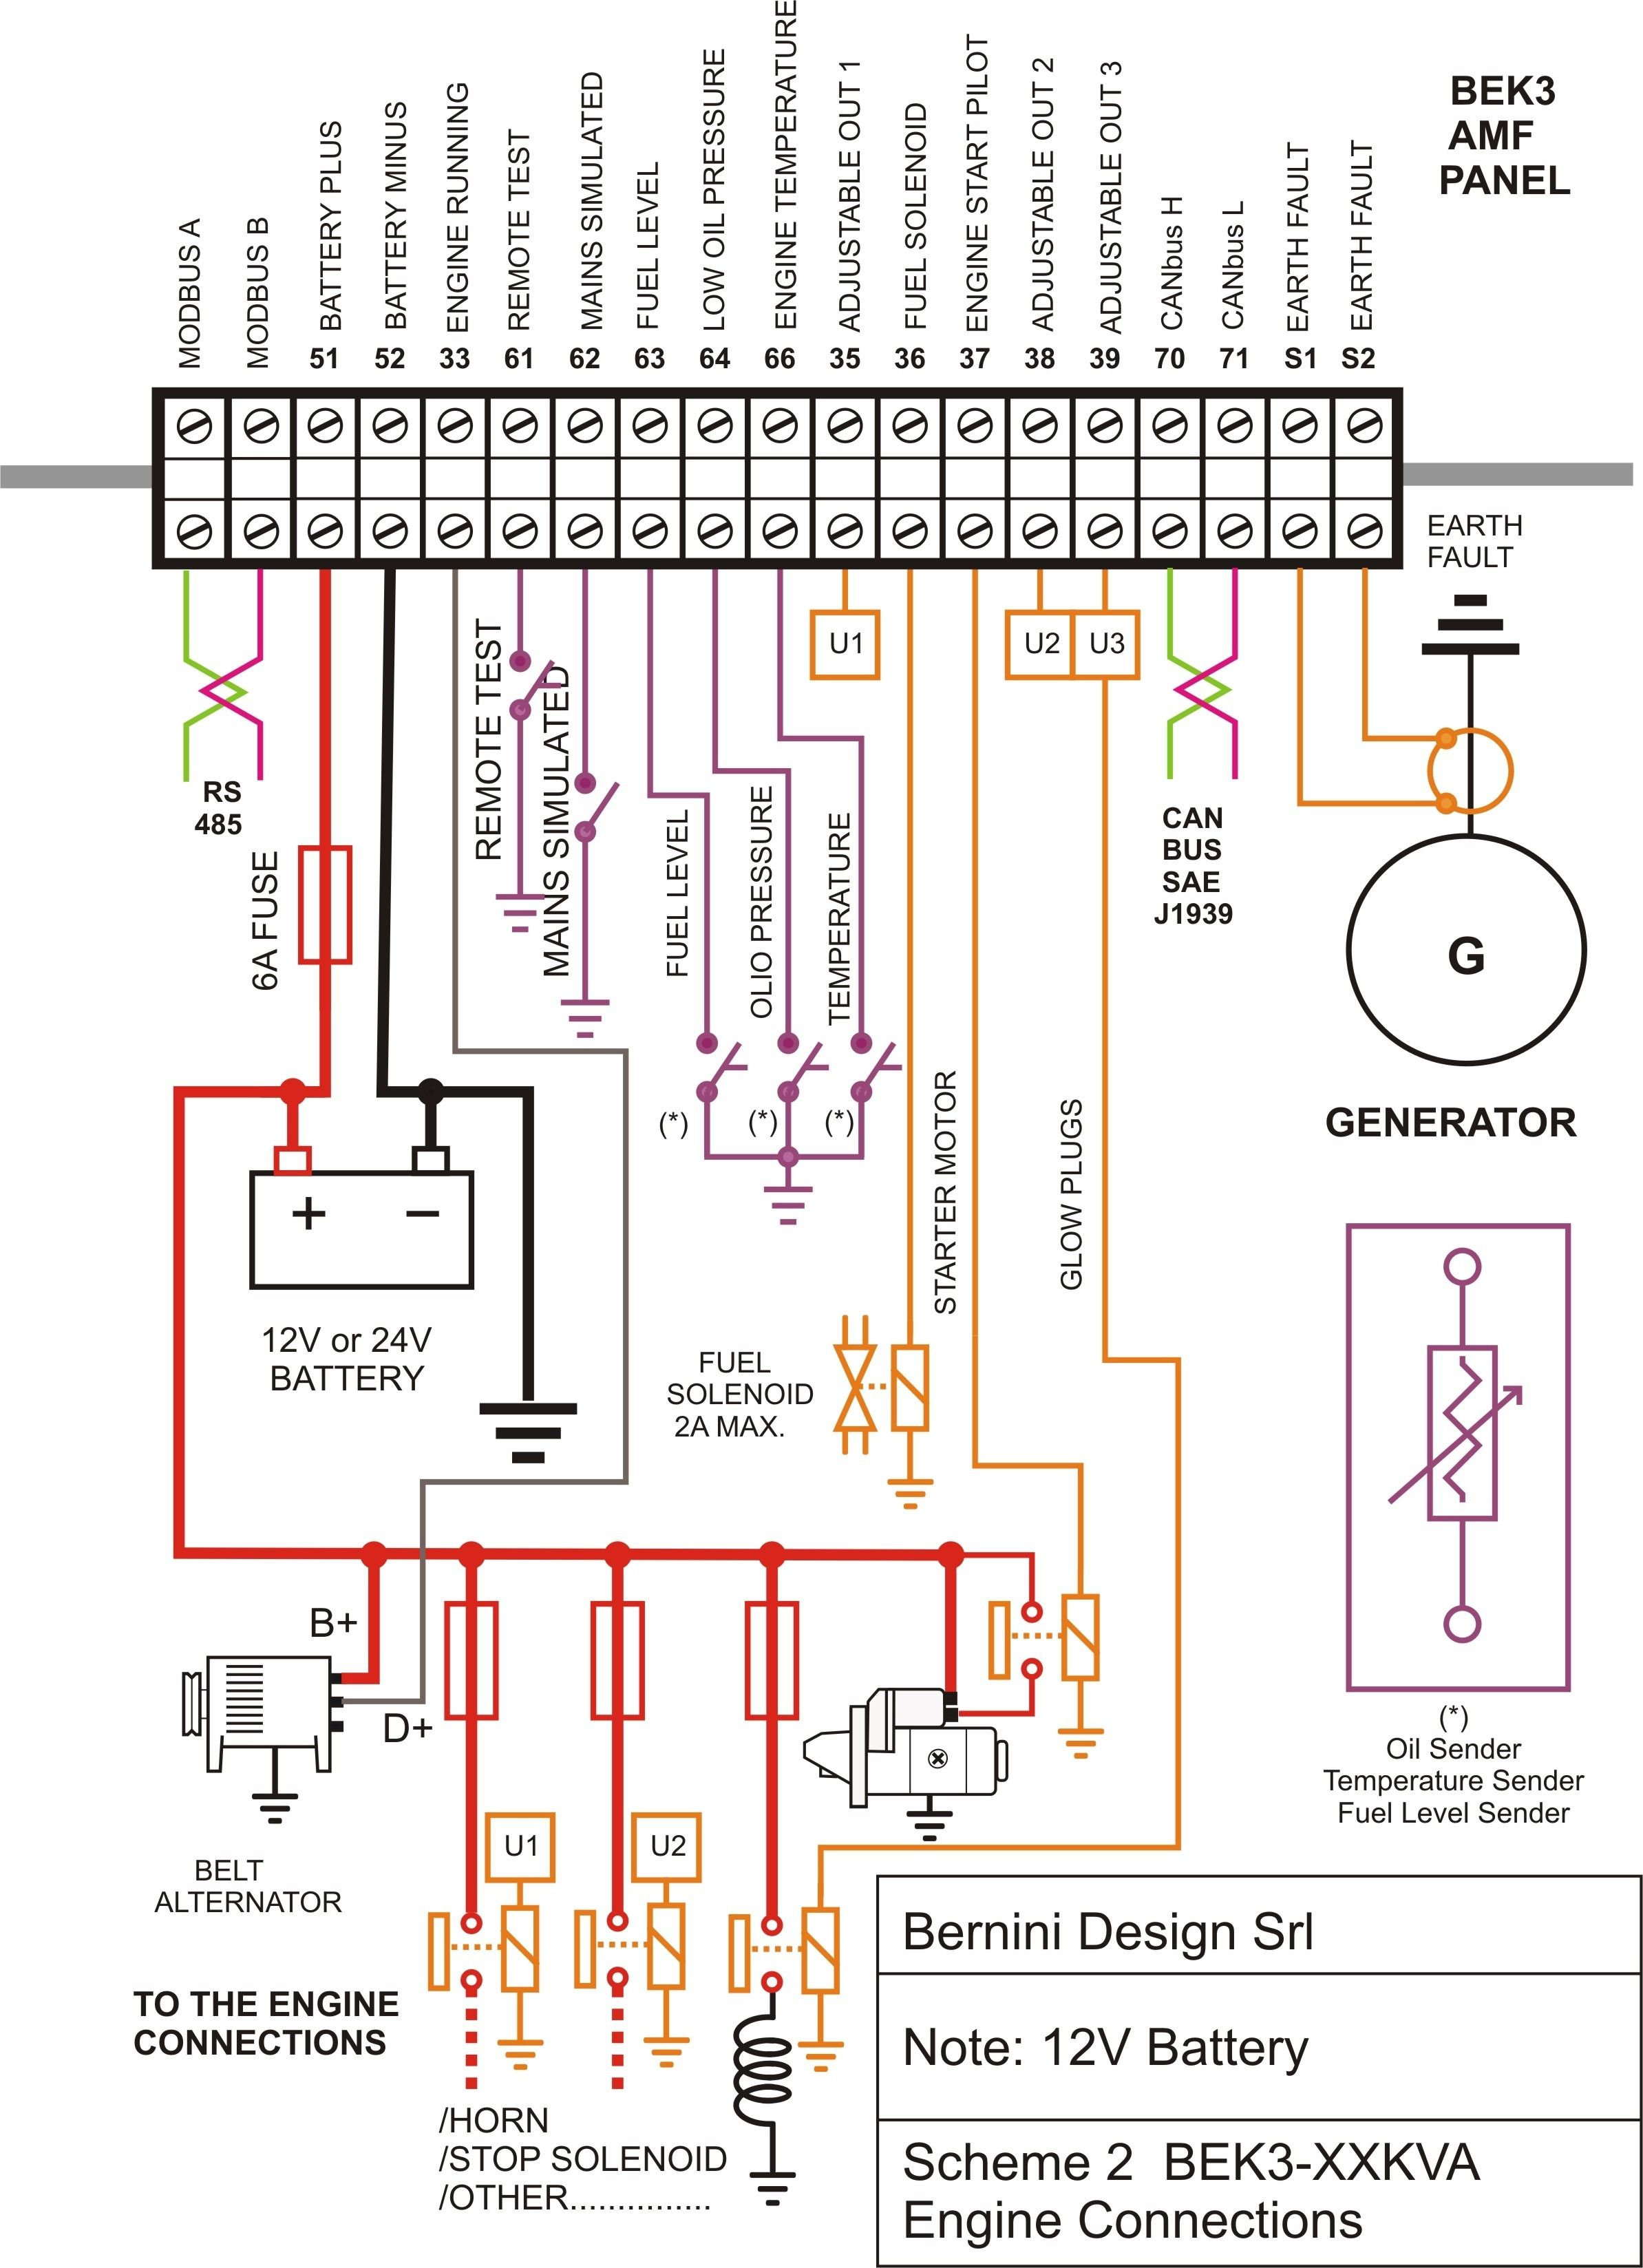 apfc panel wiring diagram ht panel wiring diagram basic electrical wiring diagram pdf | wiringdiagram.org ...